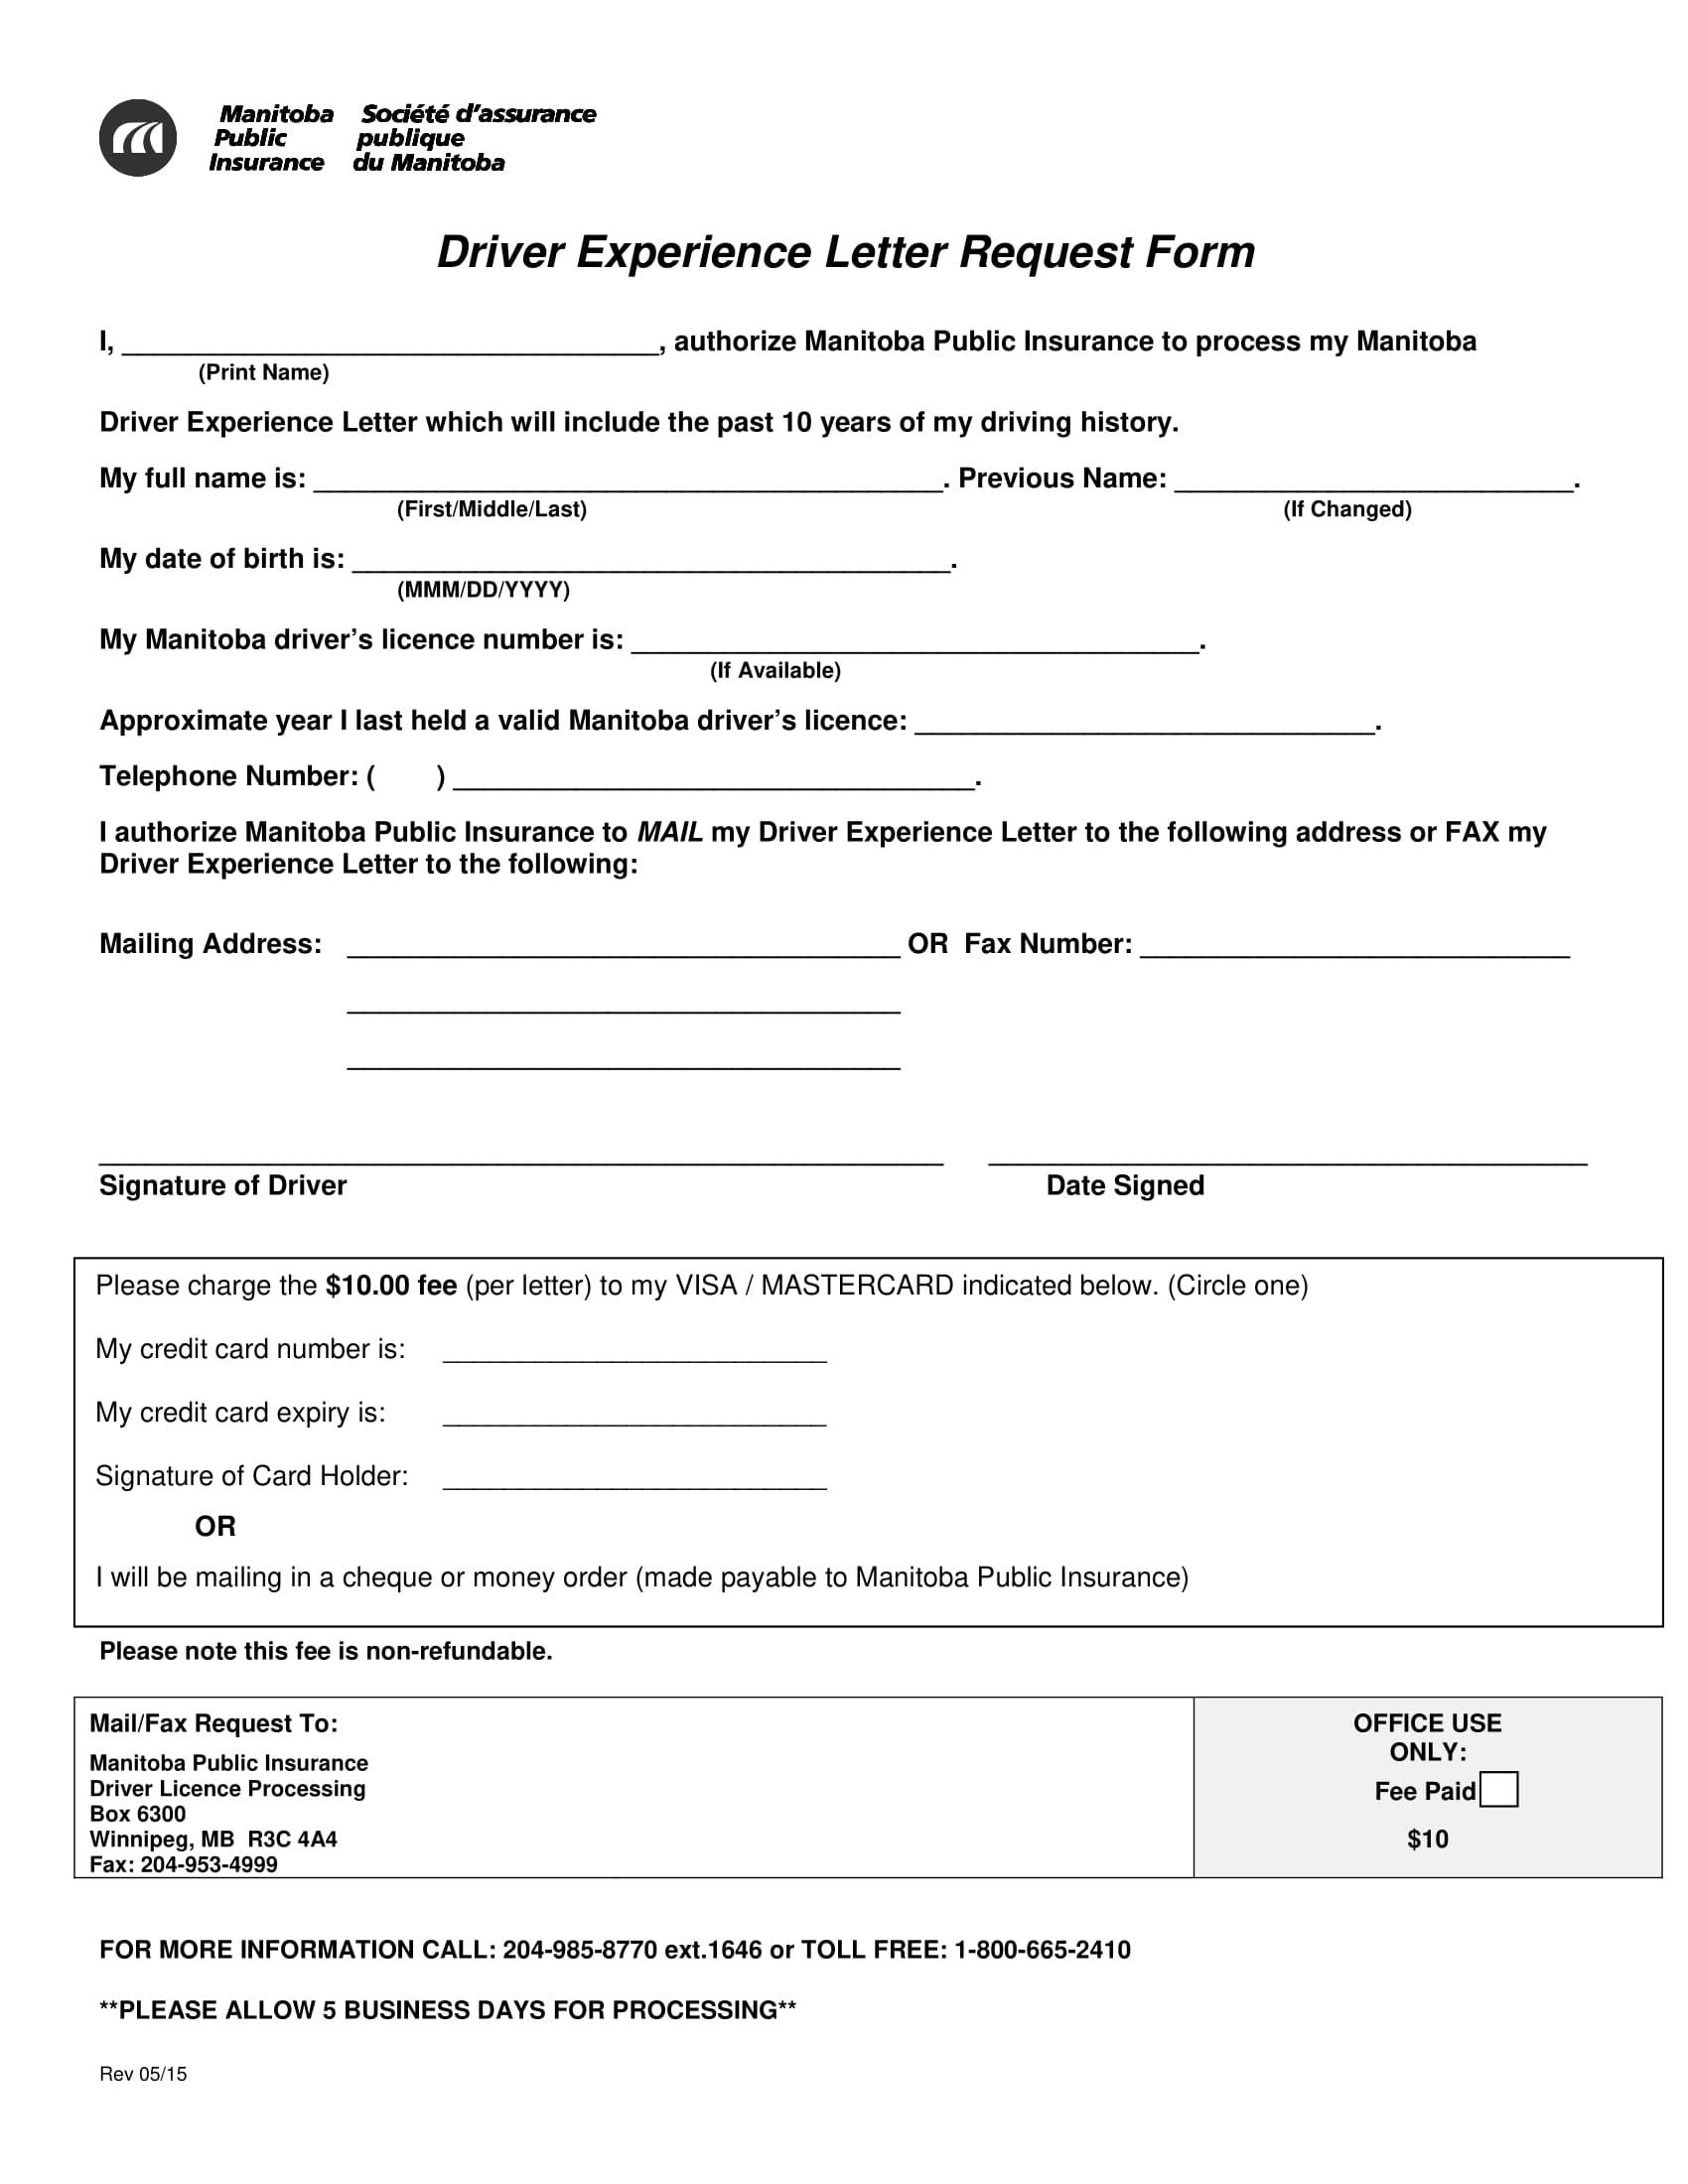 driver experience letter request form 11